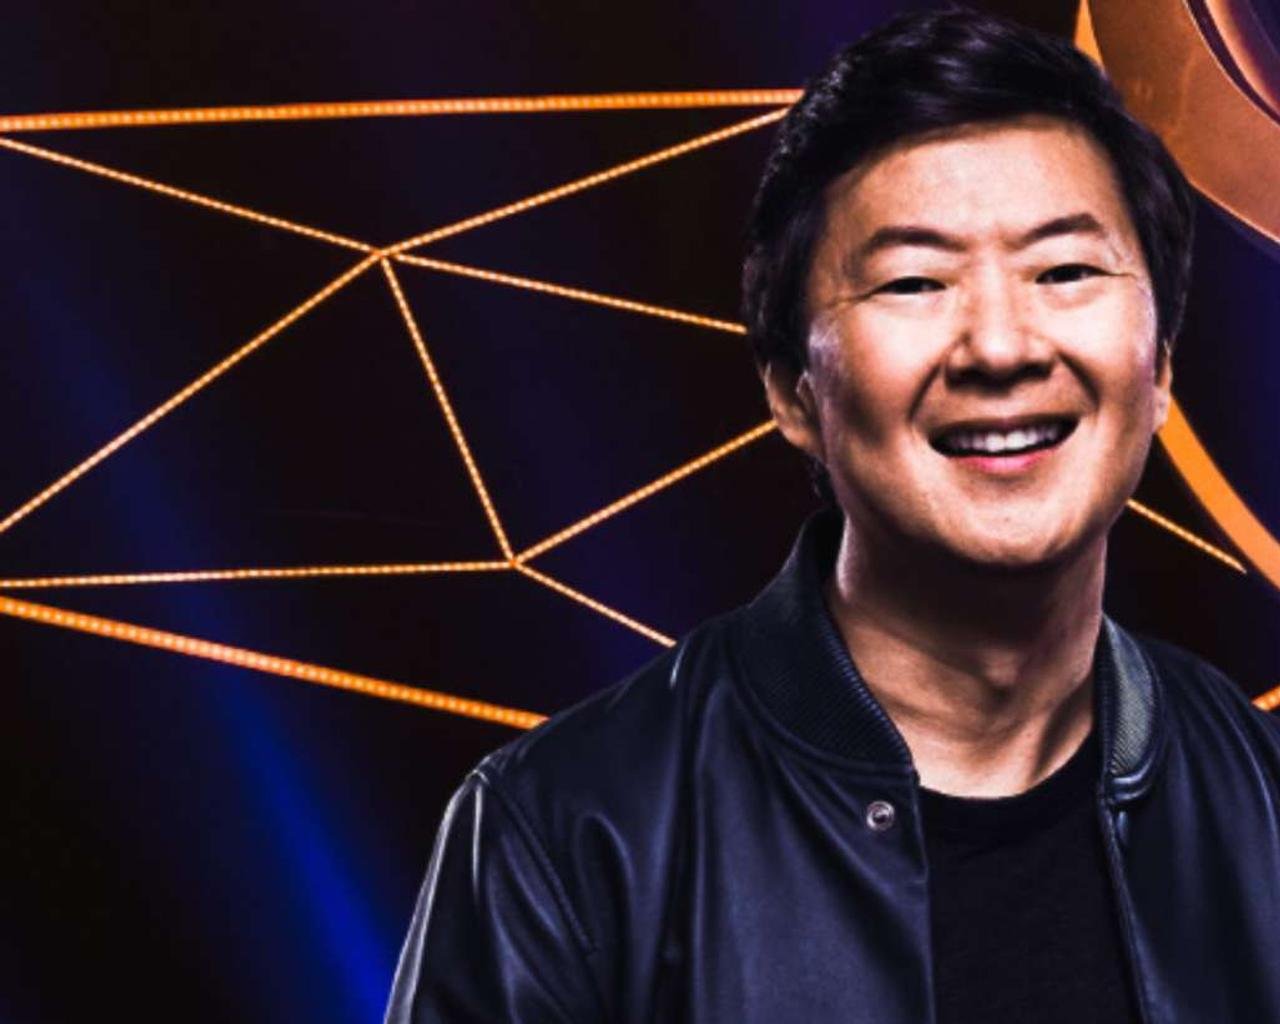 Ken Jeong donates $50,000 to the family of Atlanta.